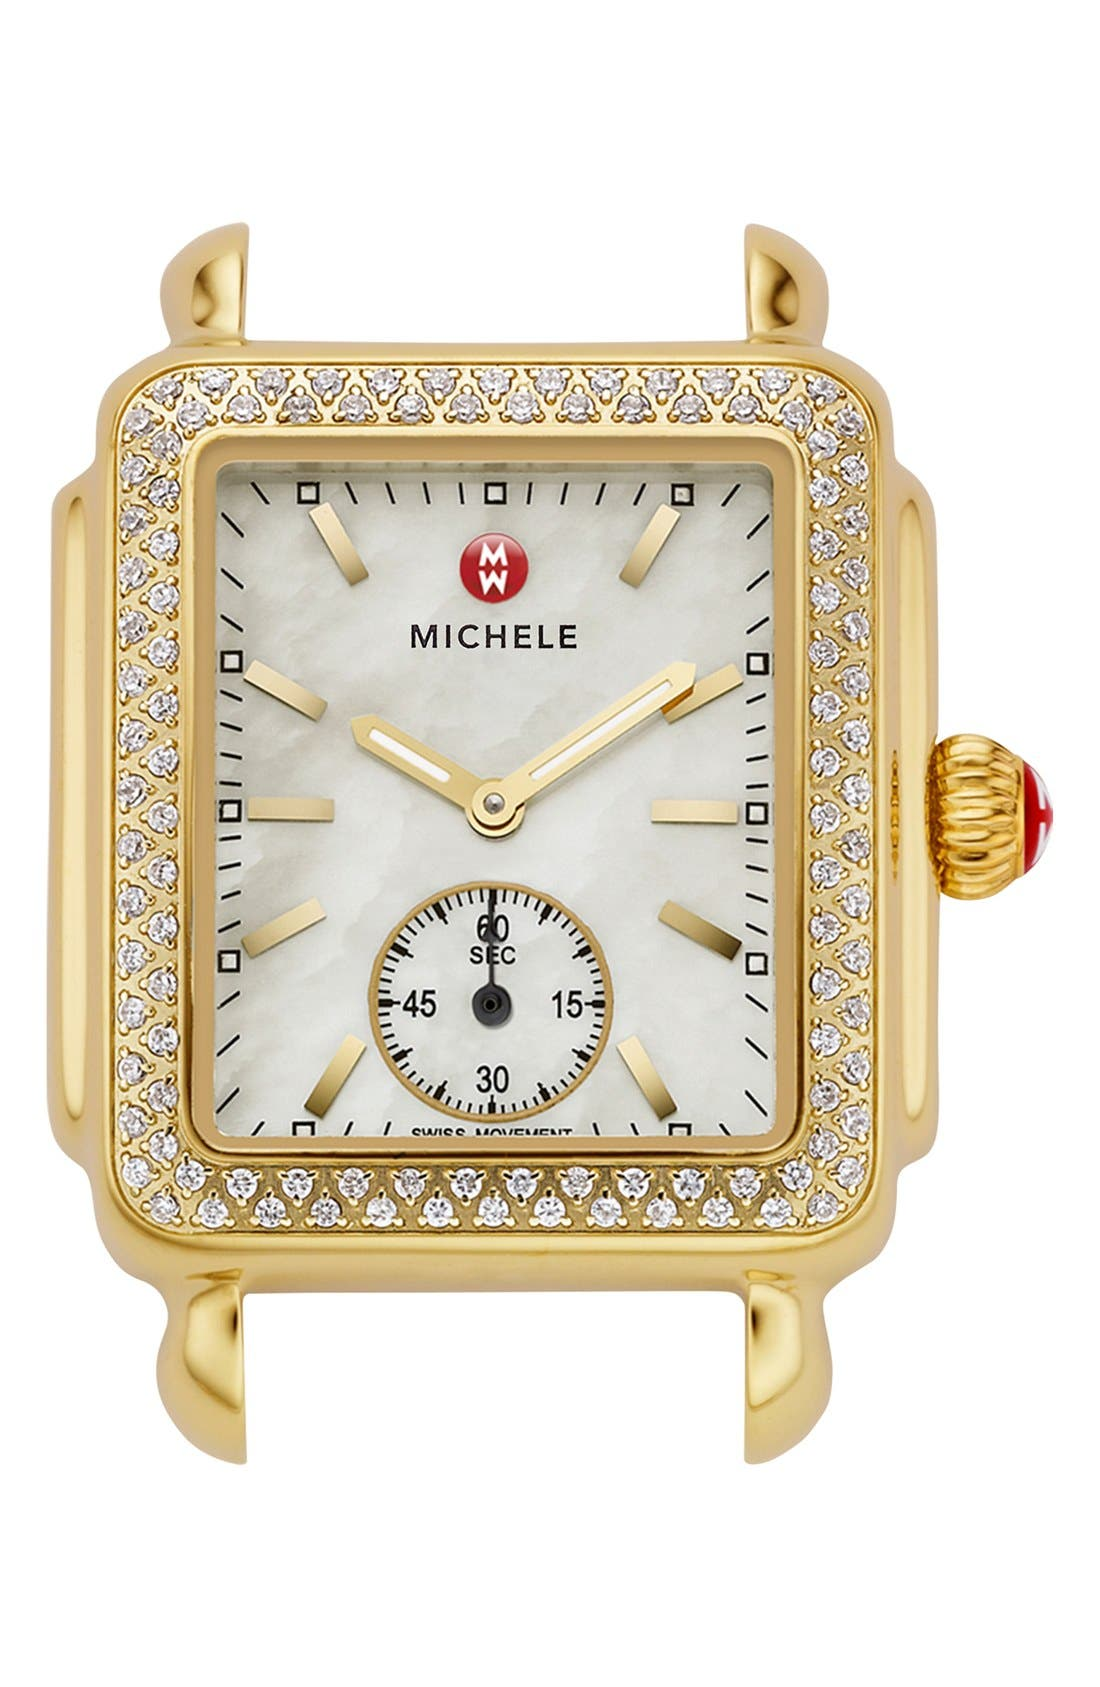 Main Image - MICHELE Deco 16 Diamond Gold Plated Watch Head, 29mm x 31mm